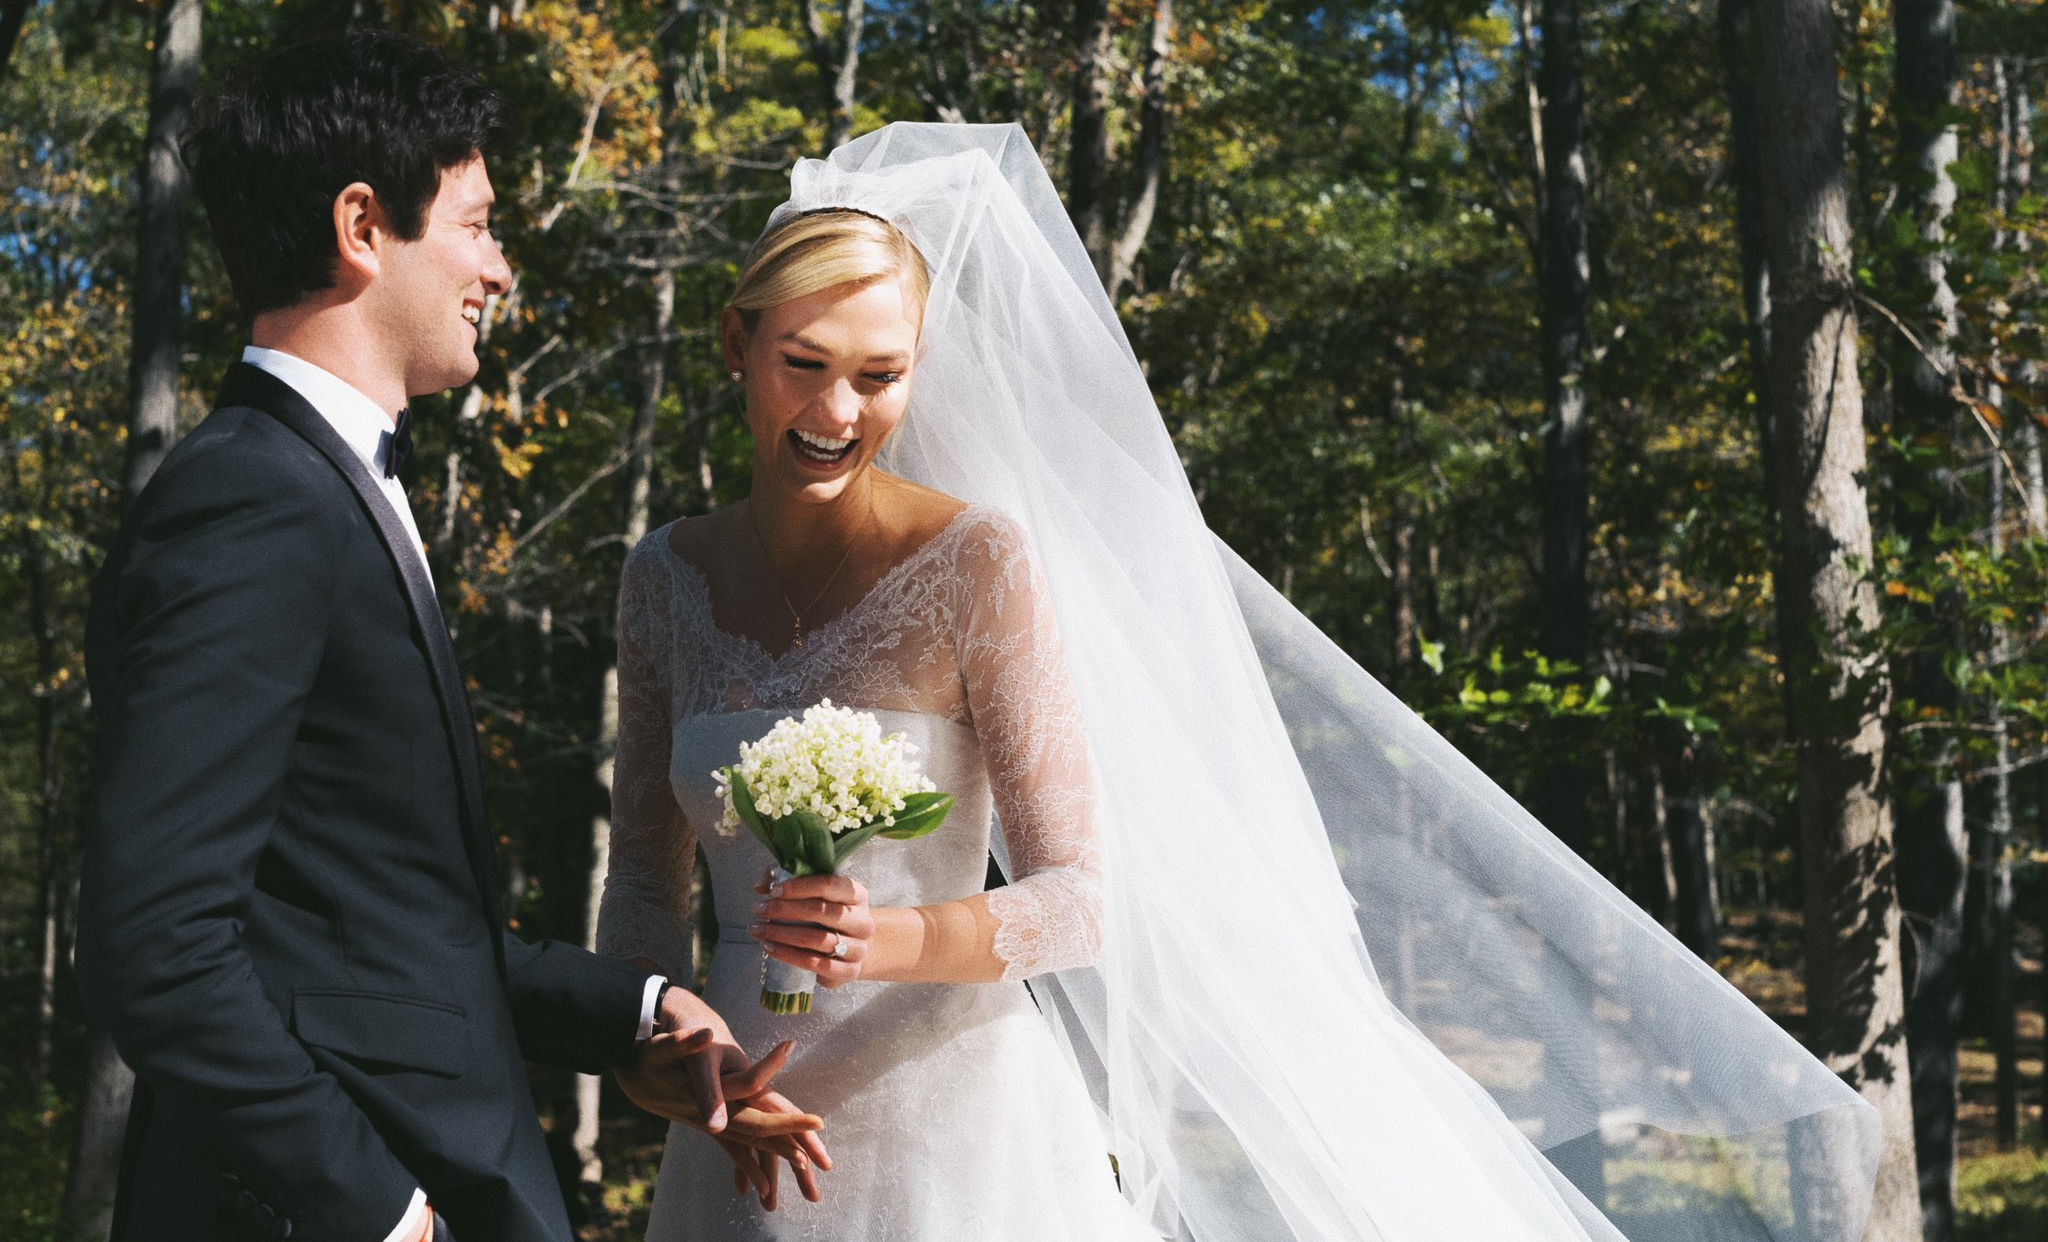 Karlie Kloss marries Joshua Kushner in 'intimate' secret ceremony